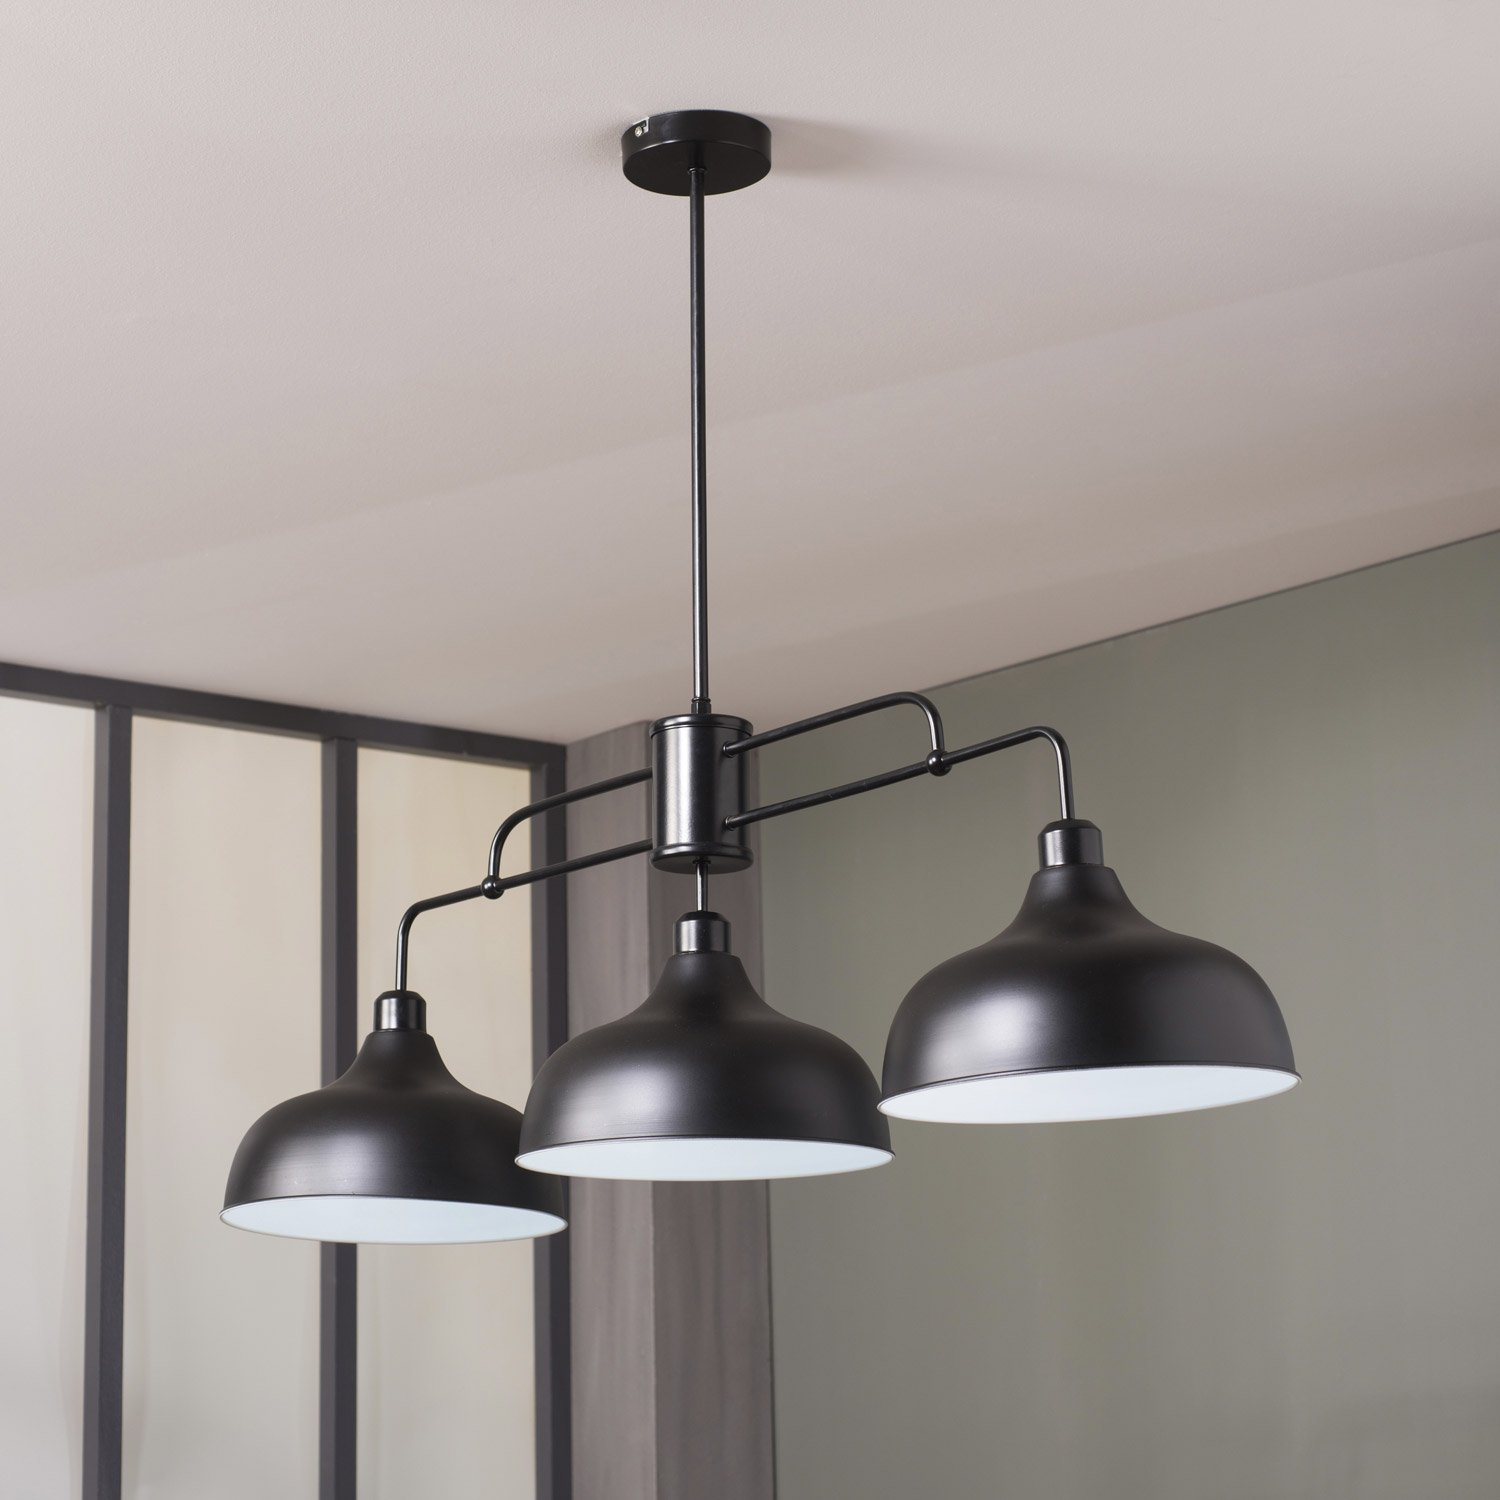 Luminaire leroy merlin for Suspension salle de bain design